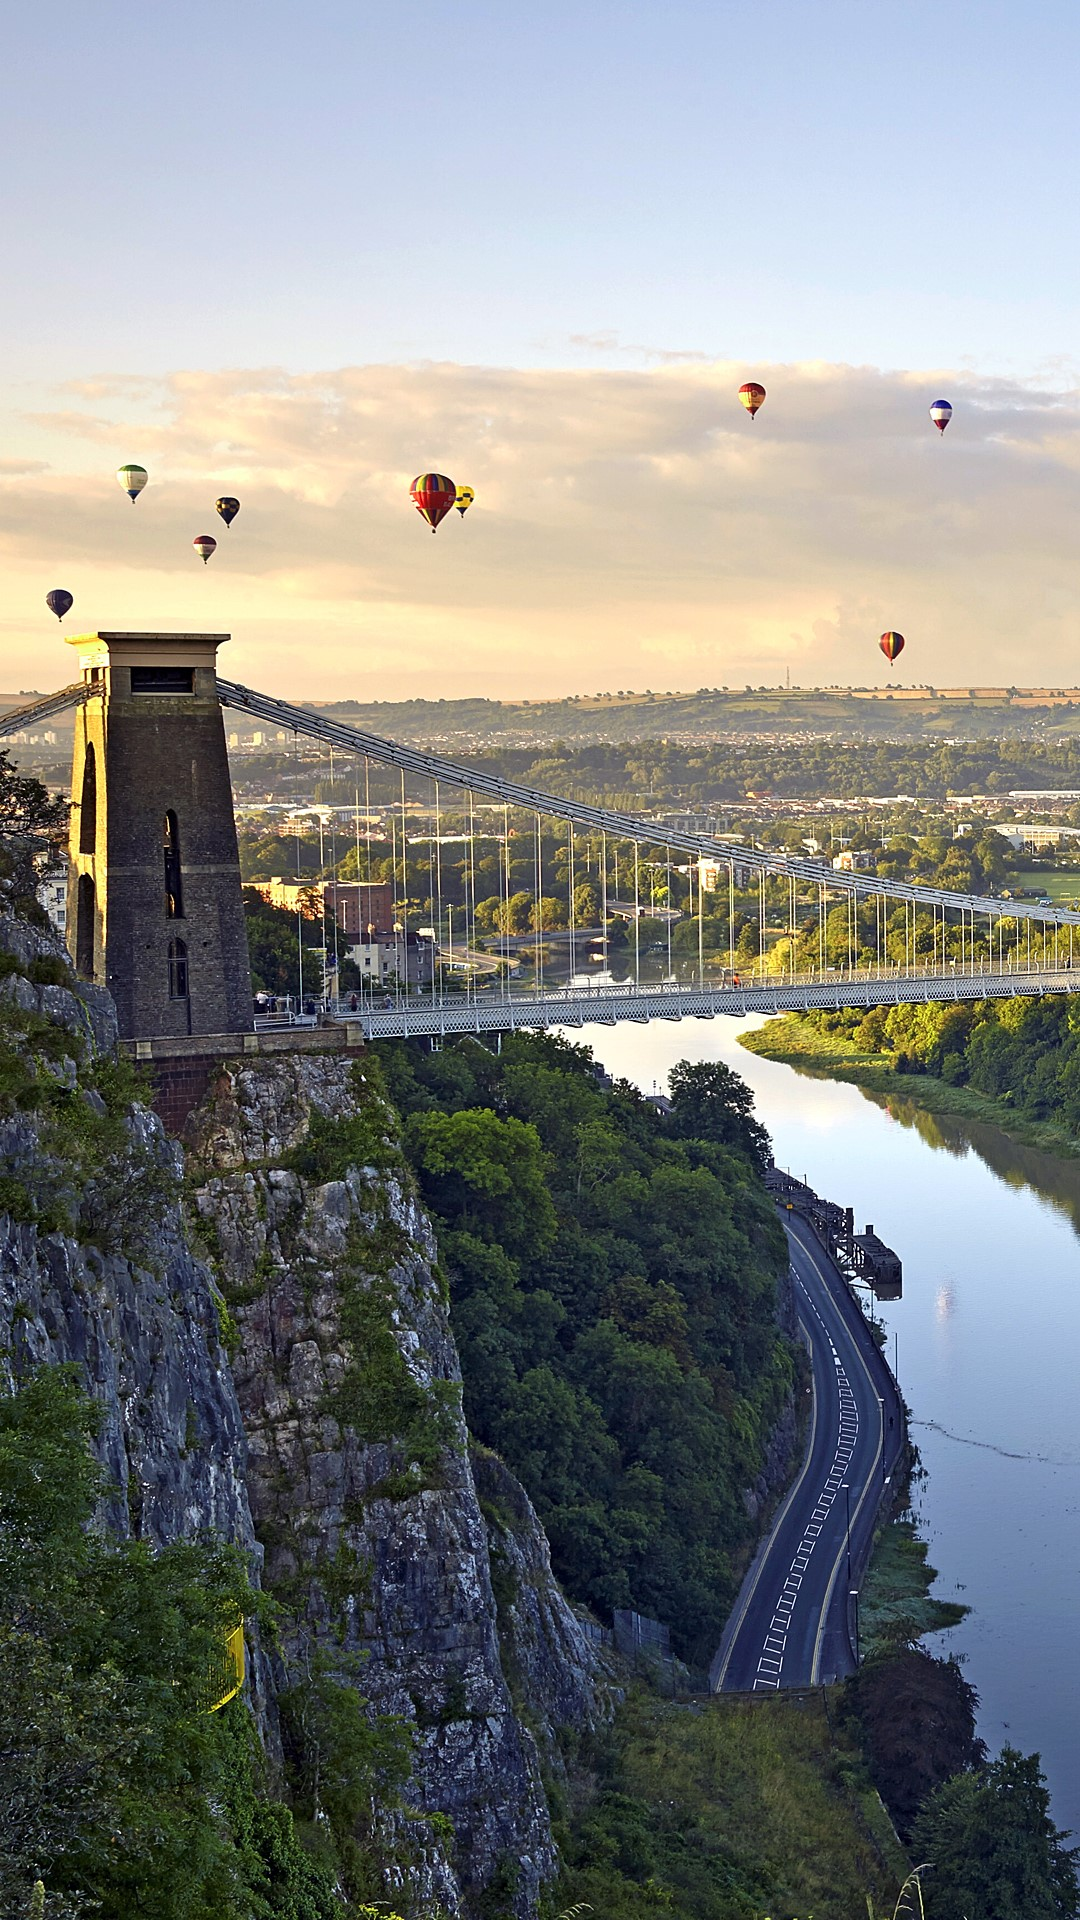 clifton suspension bridge with hot air balloons in bristol